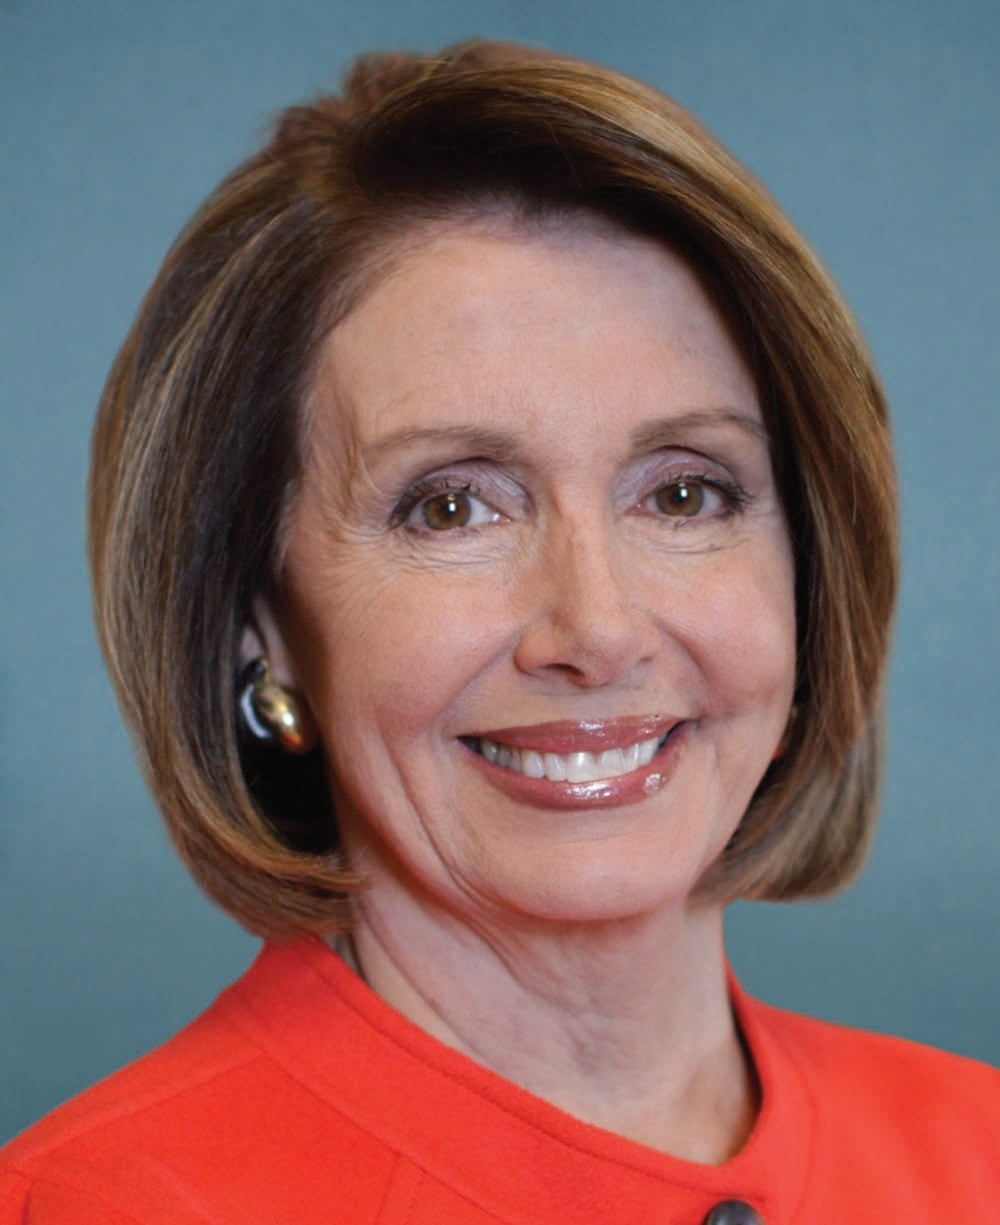 Pelosi: Democrats May Have 'No Choice' But Impeachment